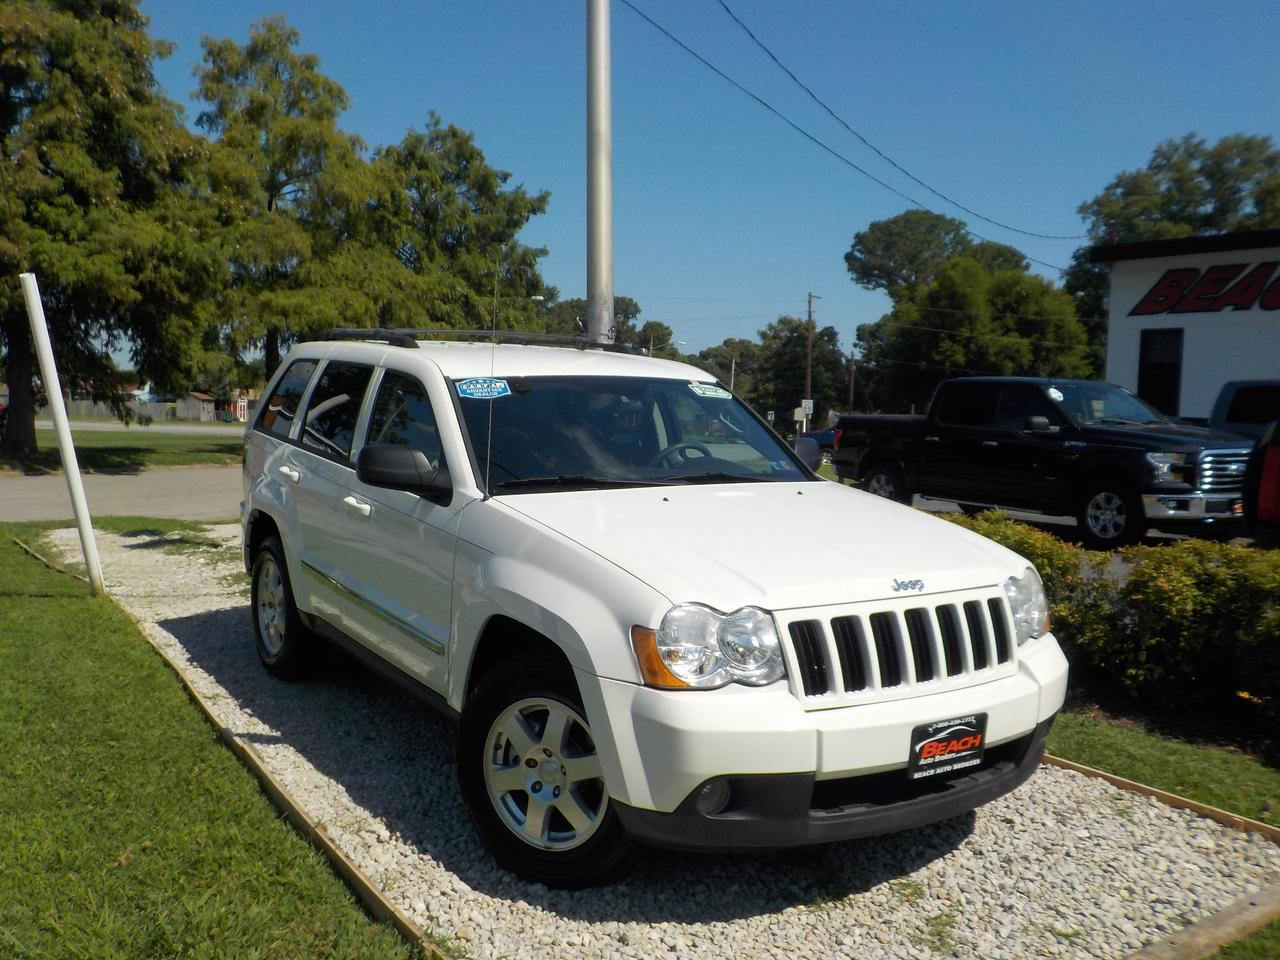 2010 JEEP GRAND CHEROKEE LAREDO 4X4, WARRANTY, POWER DRIVERS SEAT, TOW PKG, ROOF RACKS, PARKING SENSORS, UCONNECT, 1 OWNER!